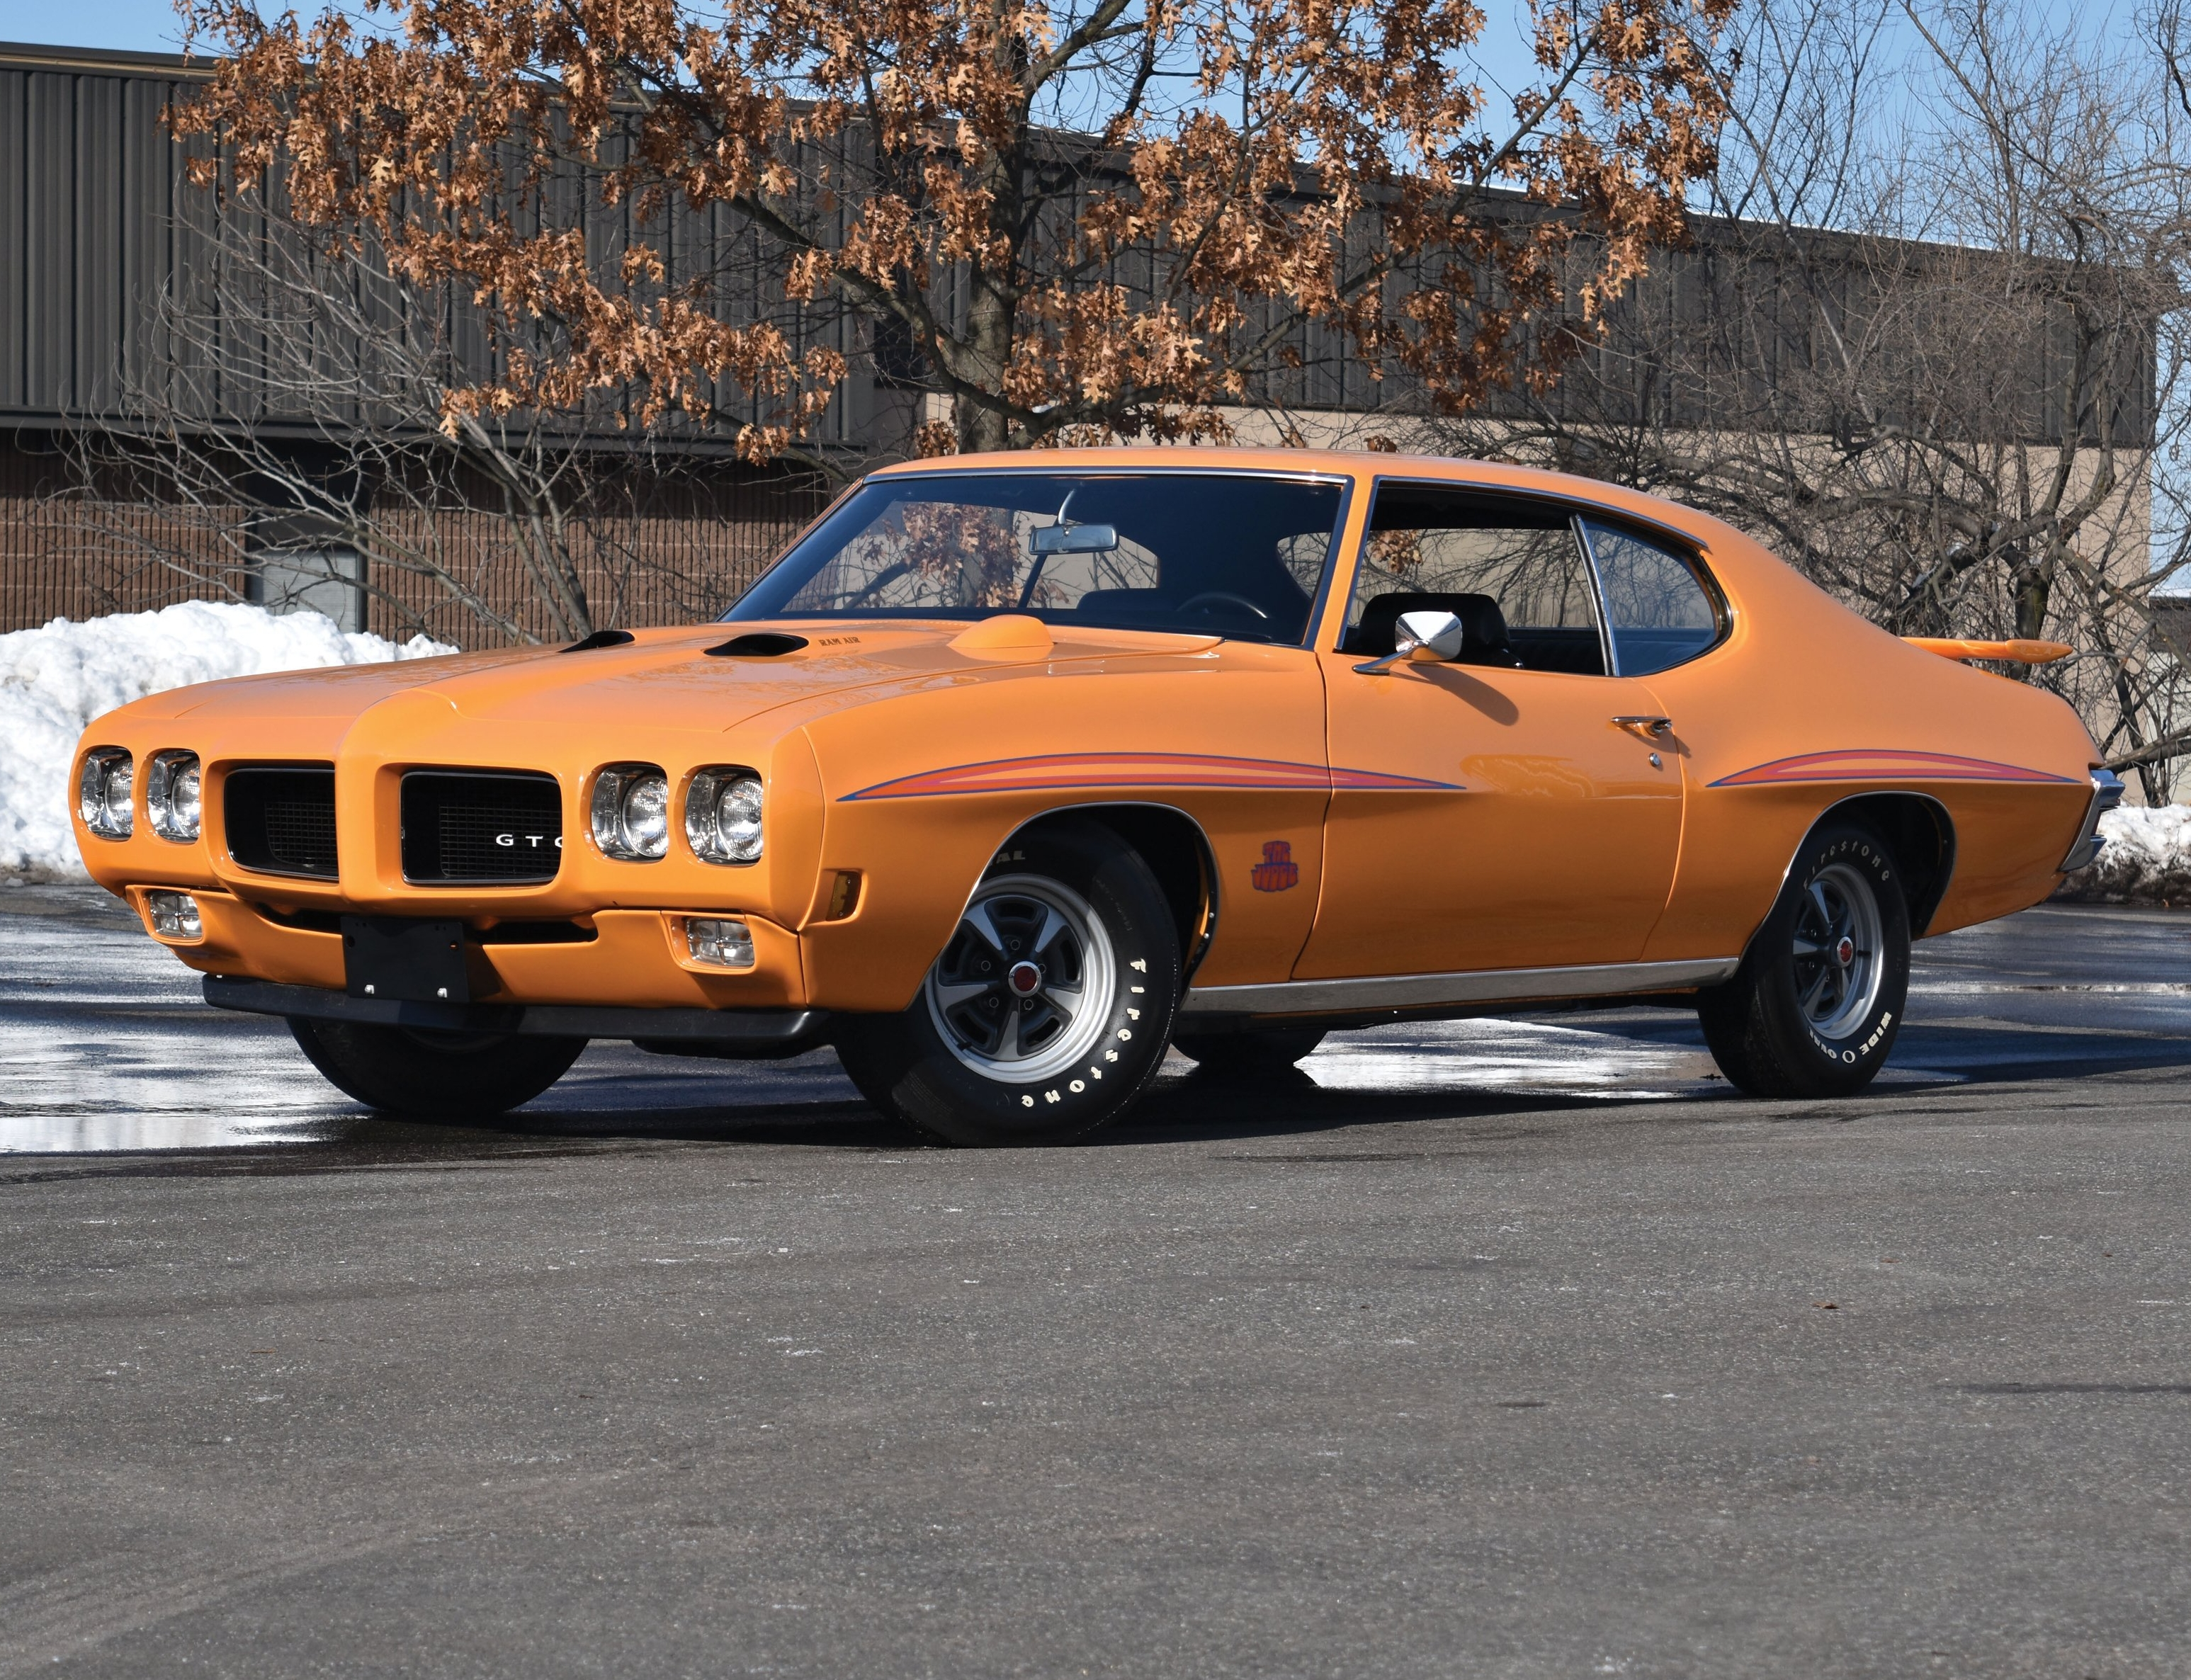 Pontiac GTO History – Part 3: 1970-1972 - Old Car Memories